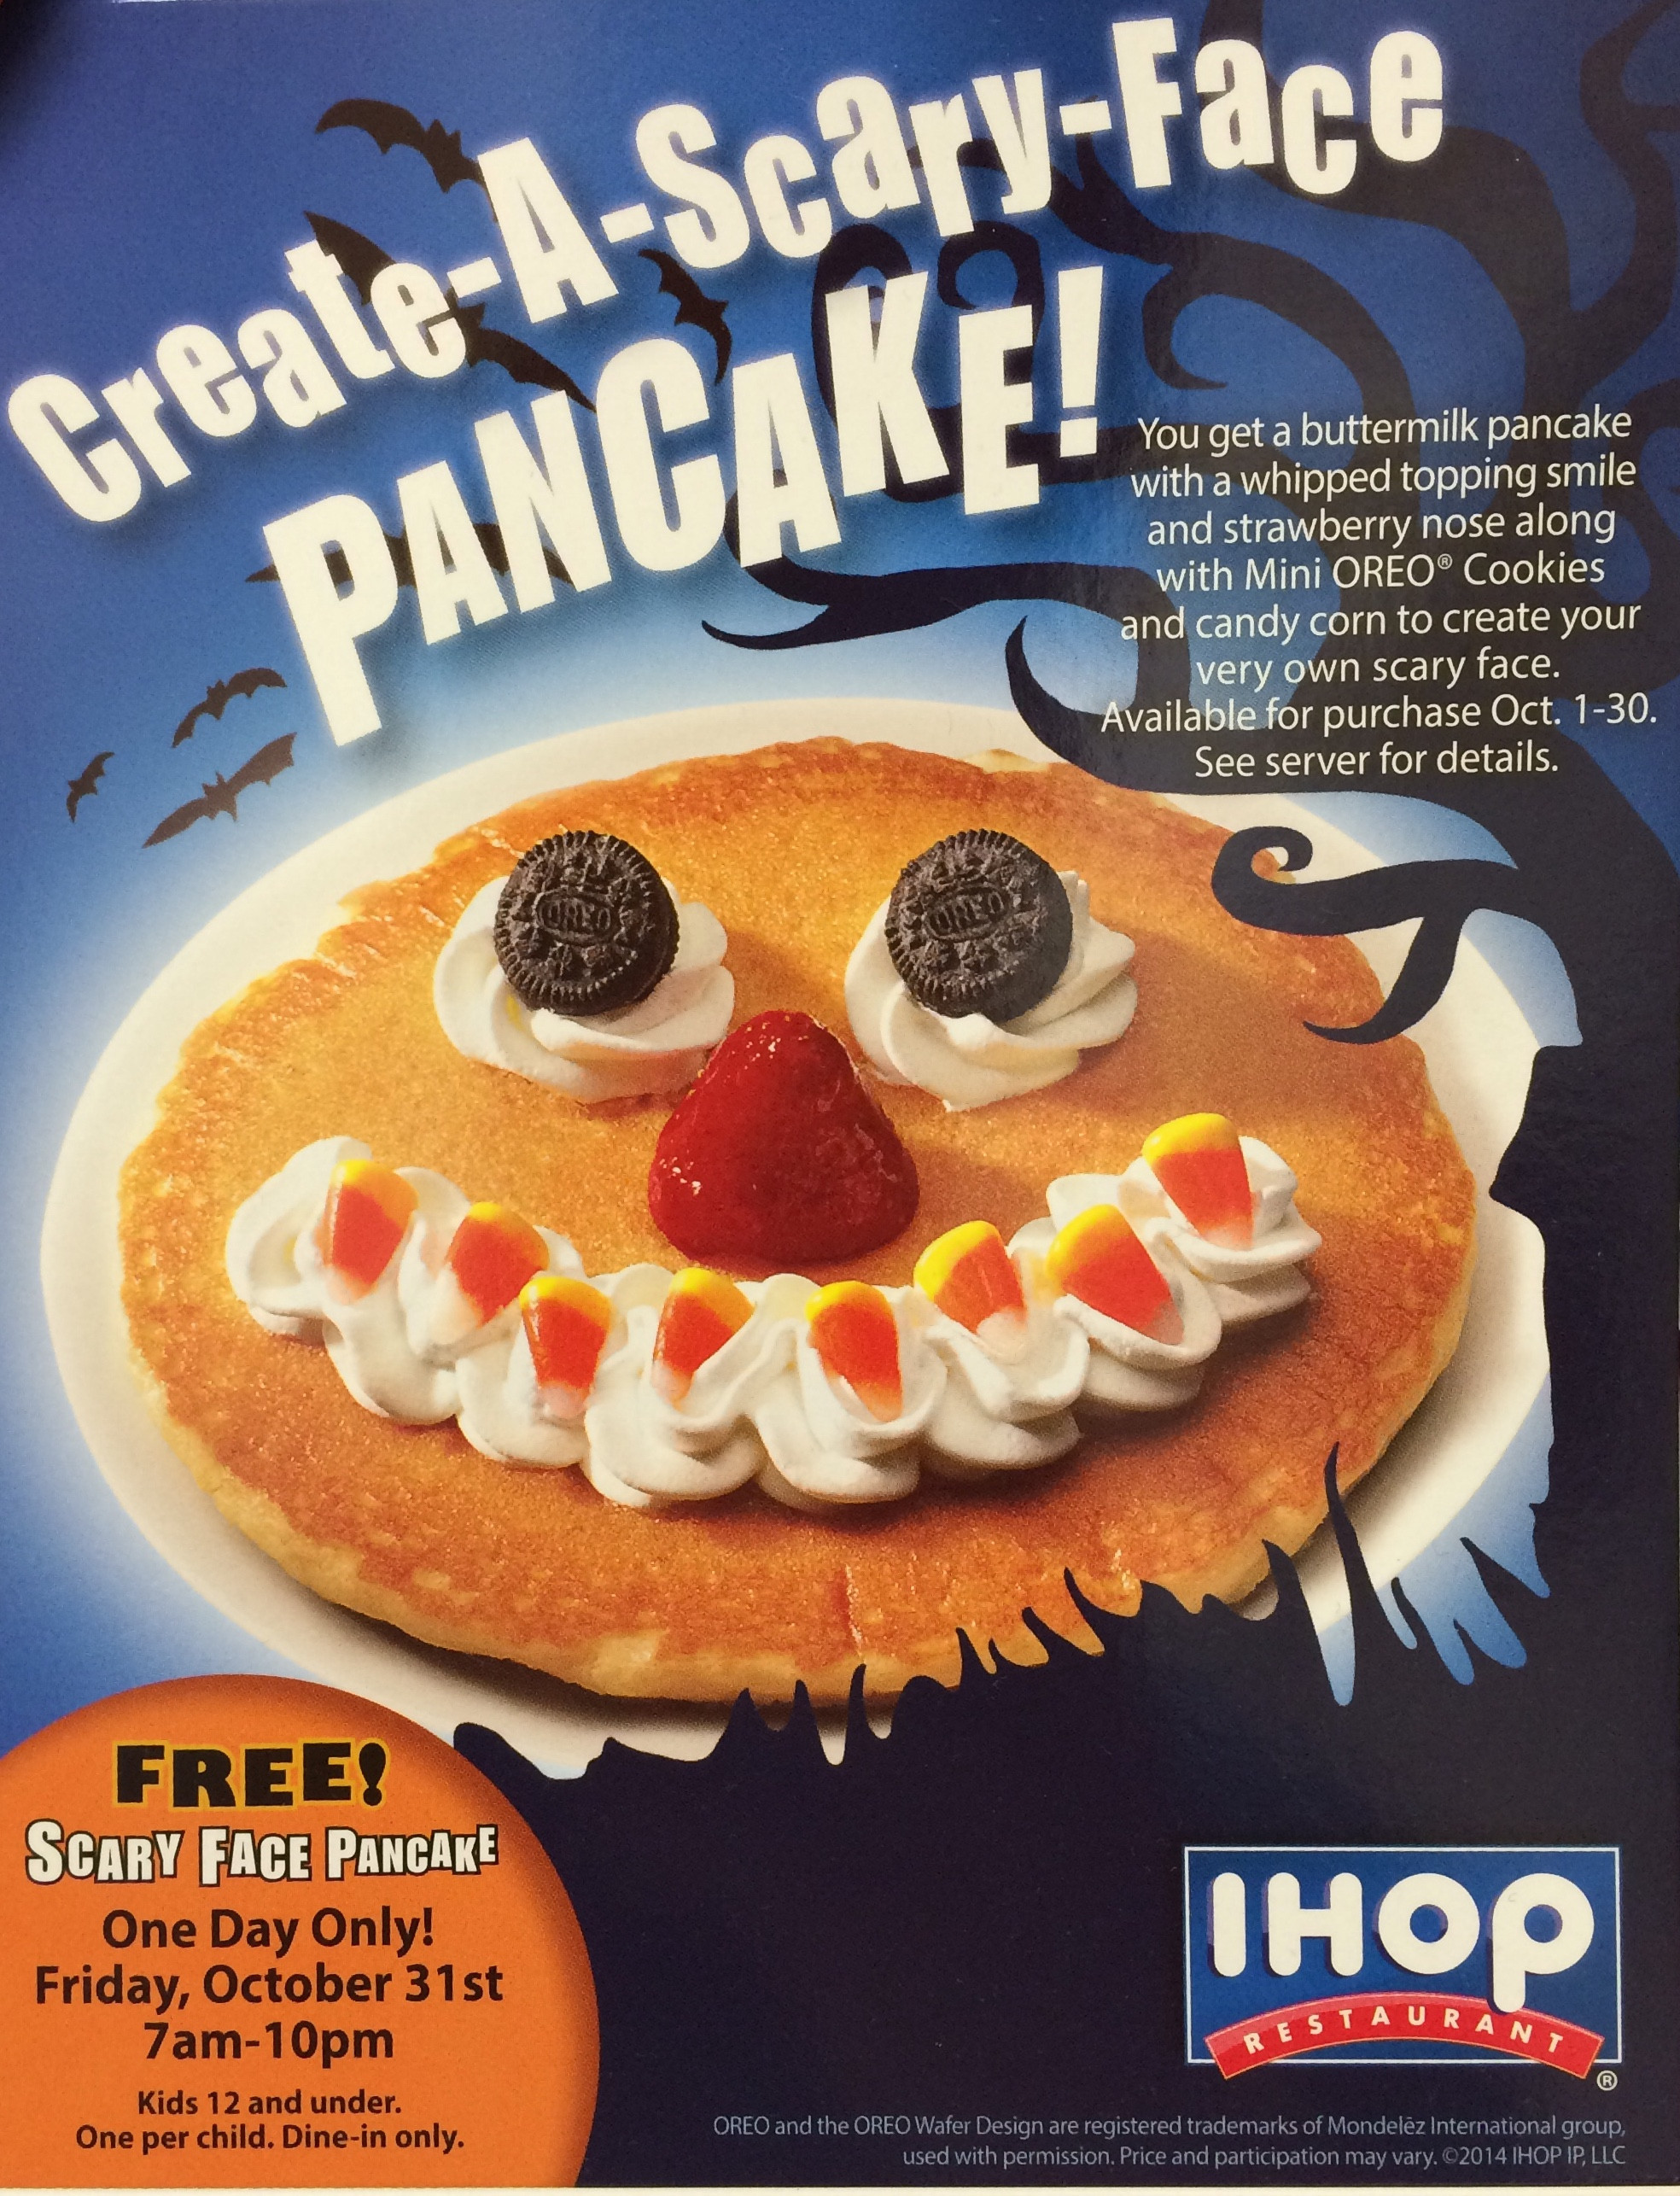 Ihop Free Pancakes Halloween  Halloween Restaurant Deals Check out these Free & Cheap